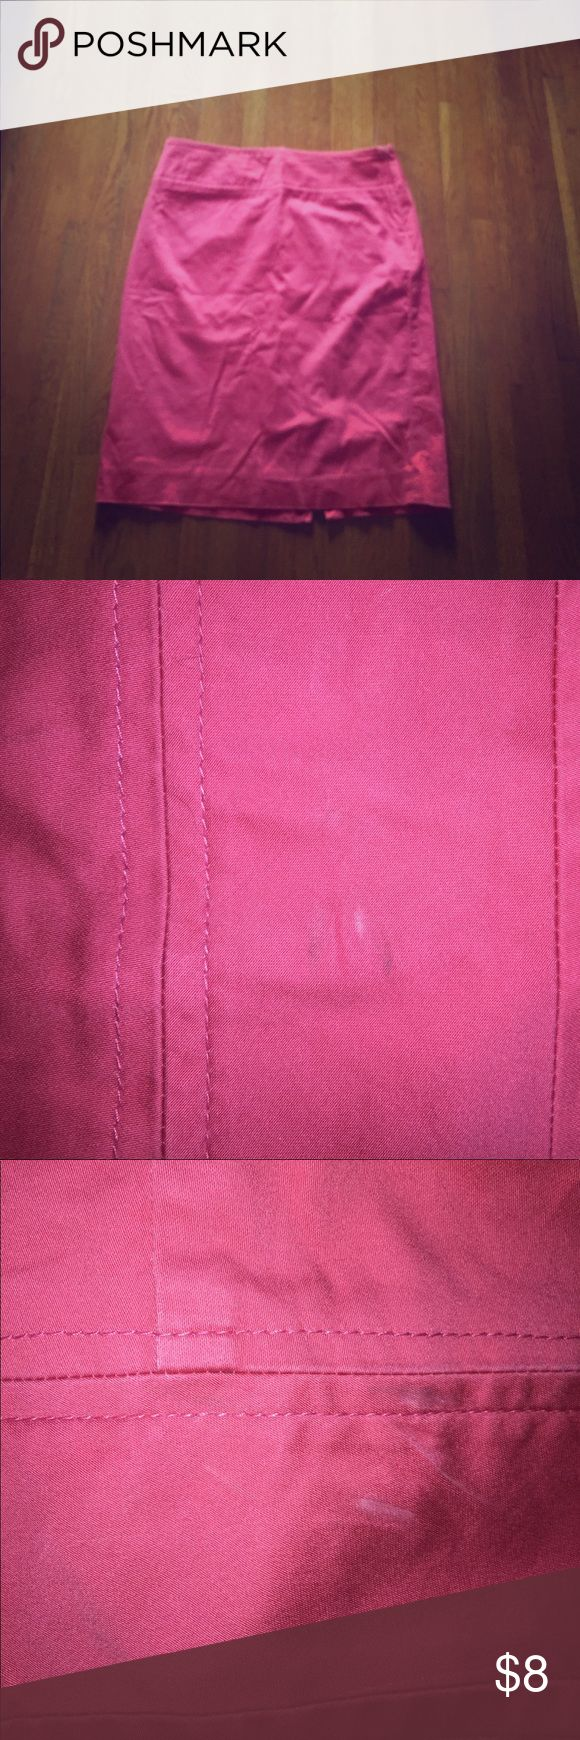 Pink Pencil Skirt High waisted pencil skirt with slit on back. From The Limited. Some fading, marks shown in photos. The Limited Skirts Pencil